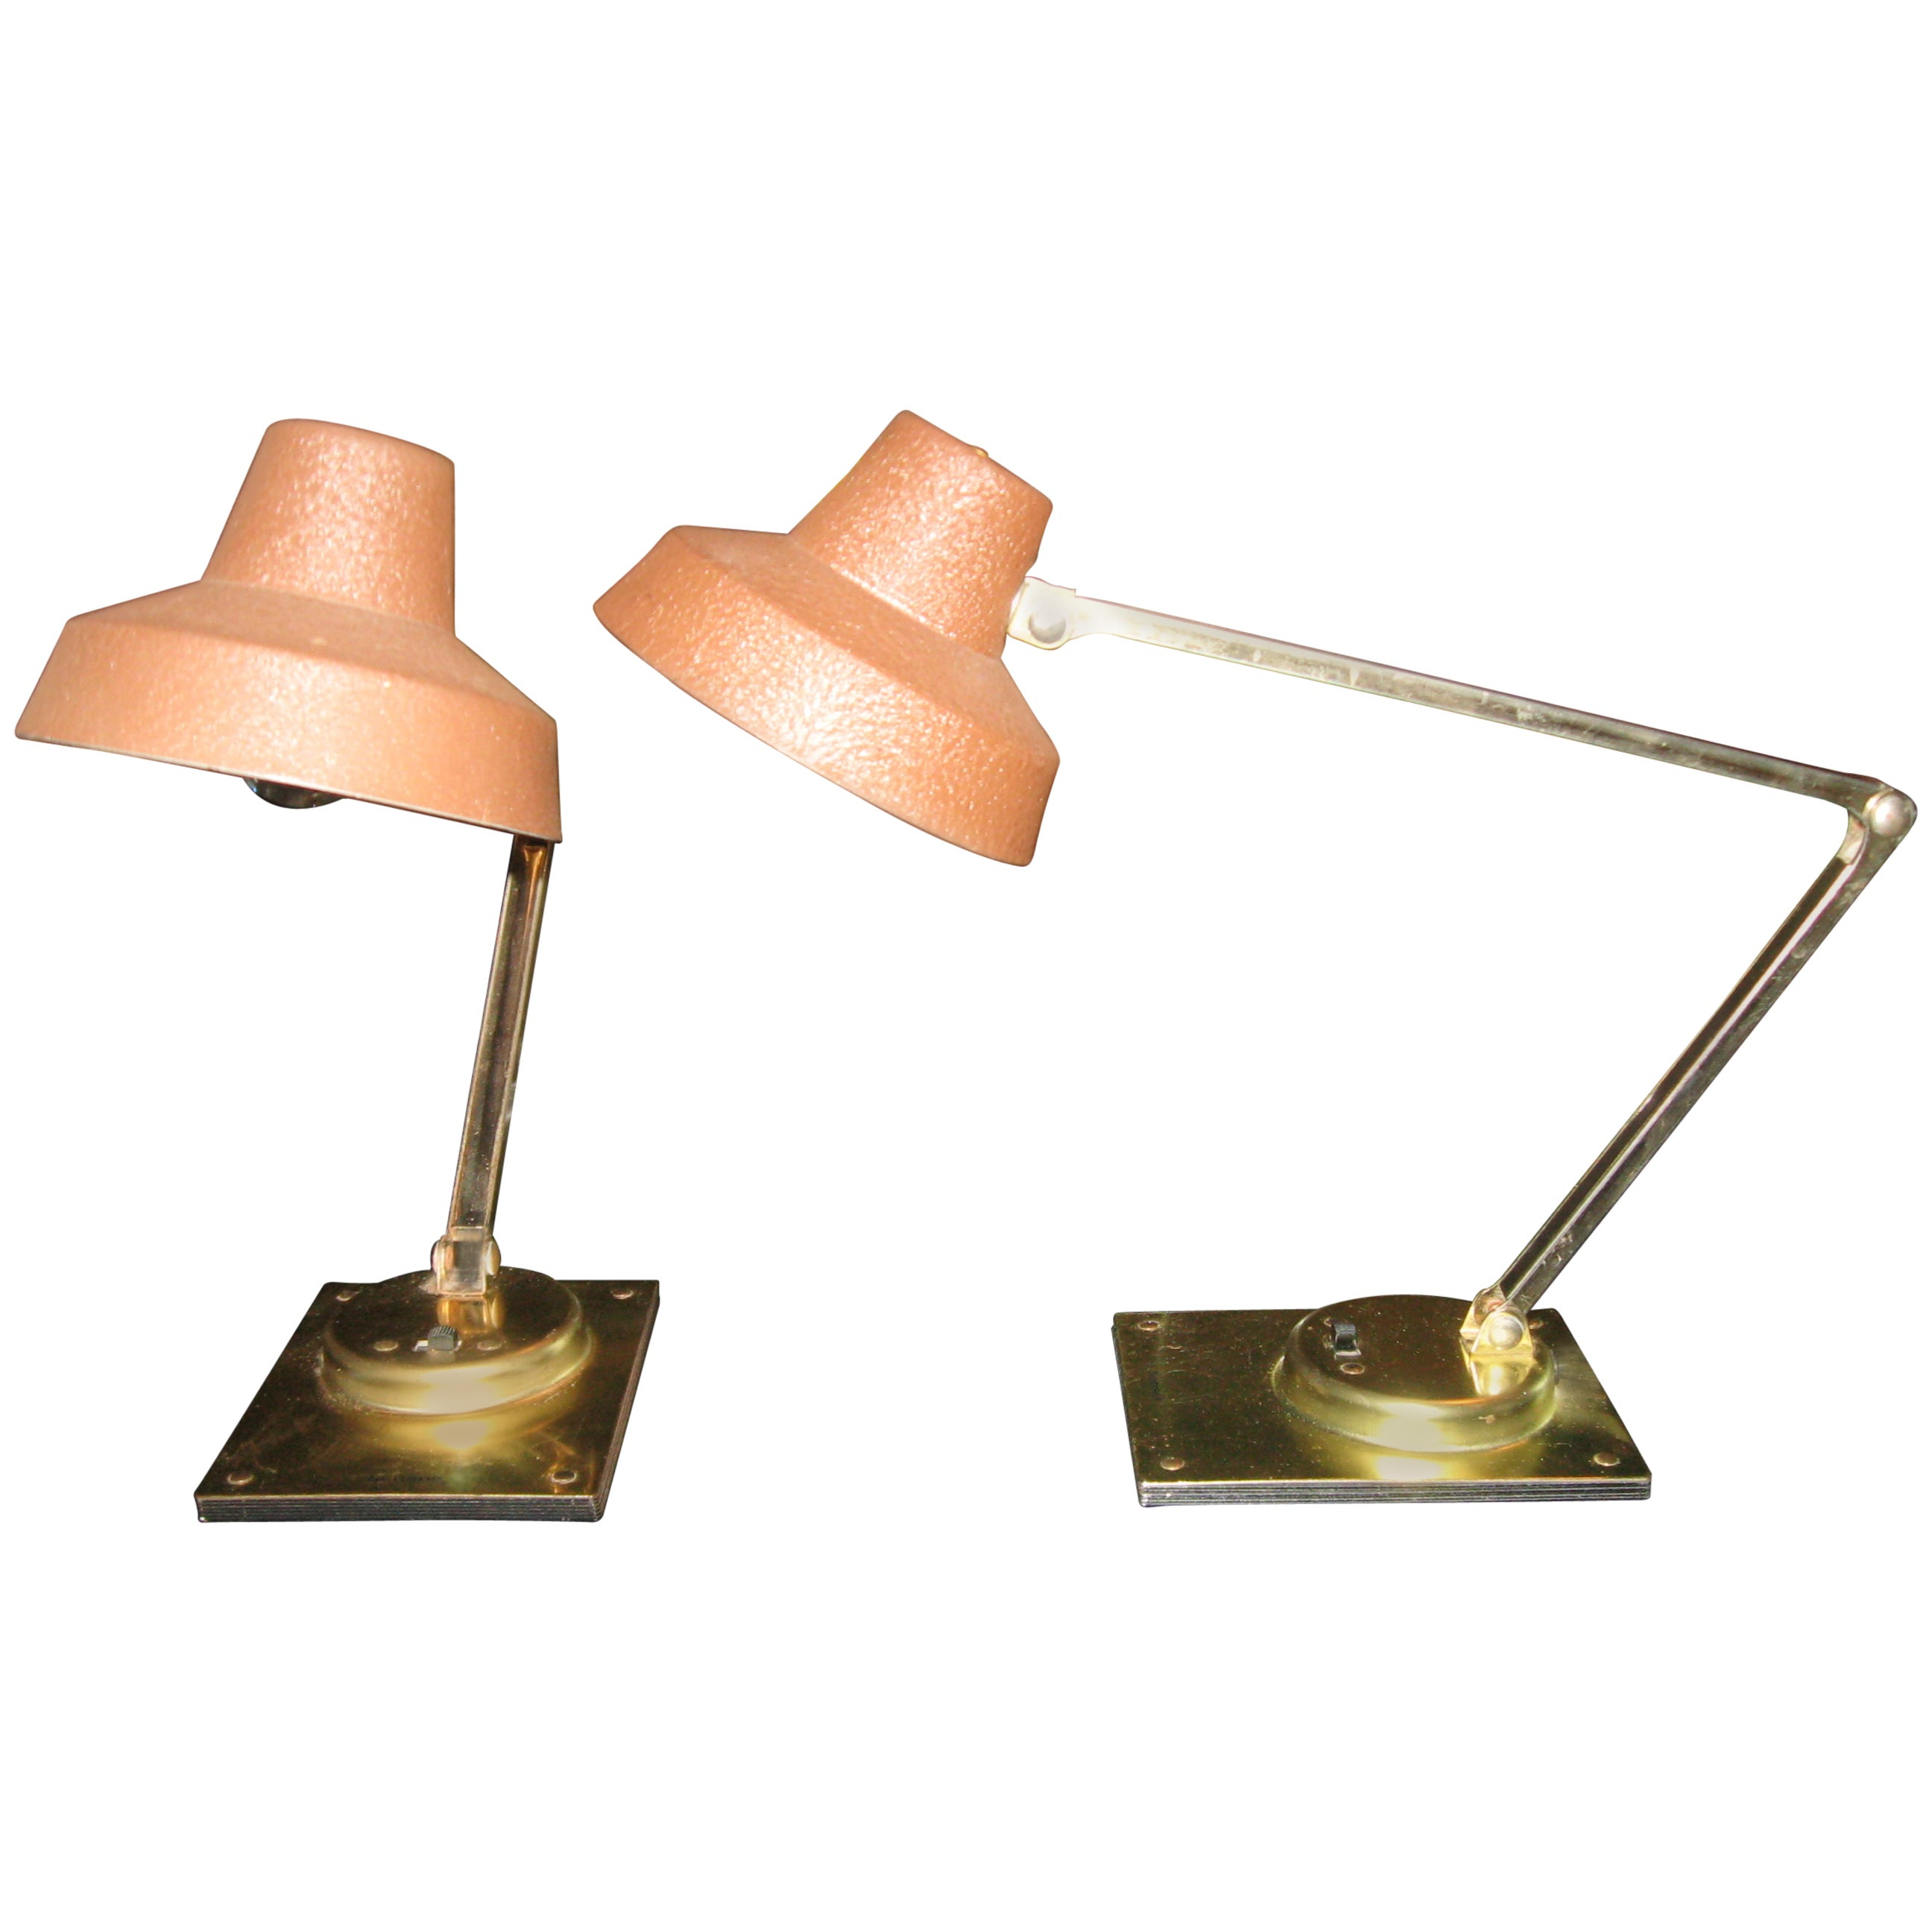 Pair of Midcentury Adjustable Lamps by Tensor